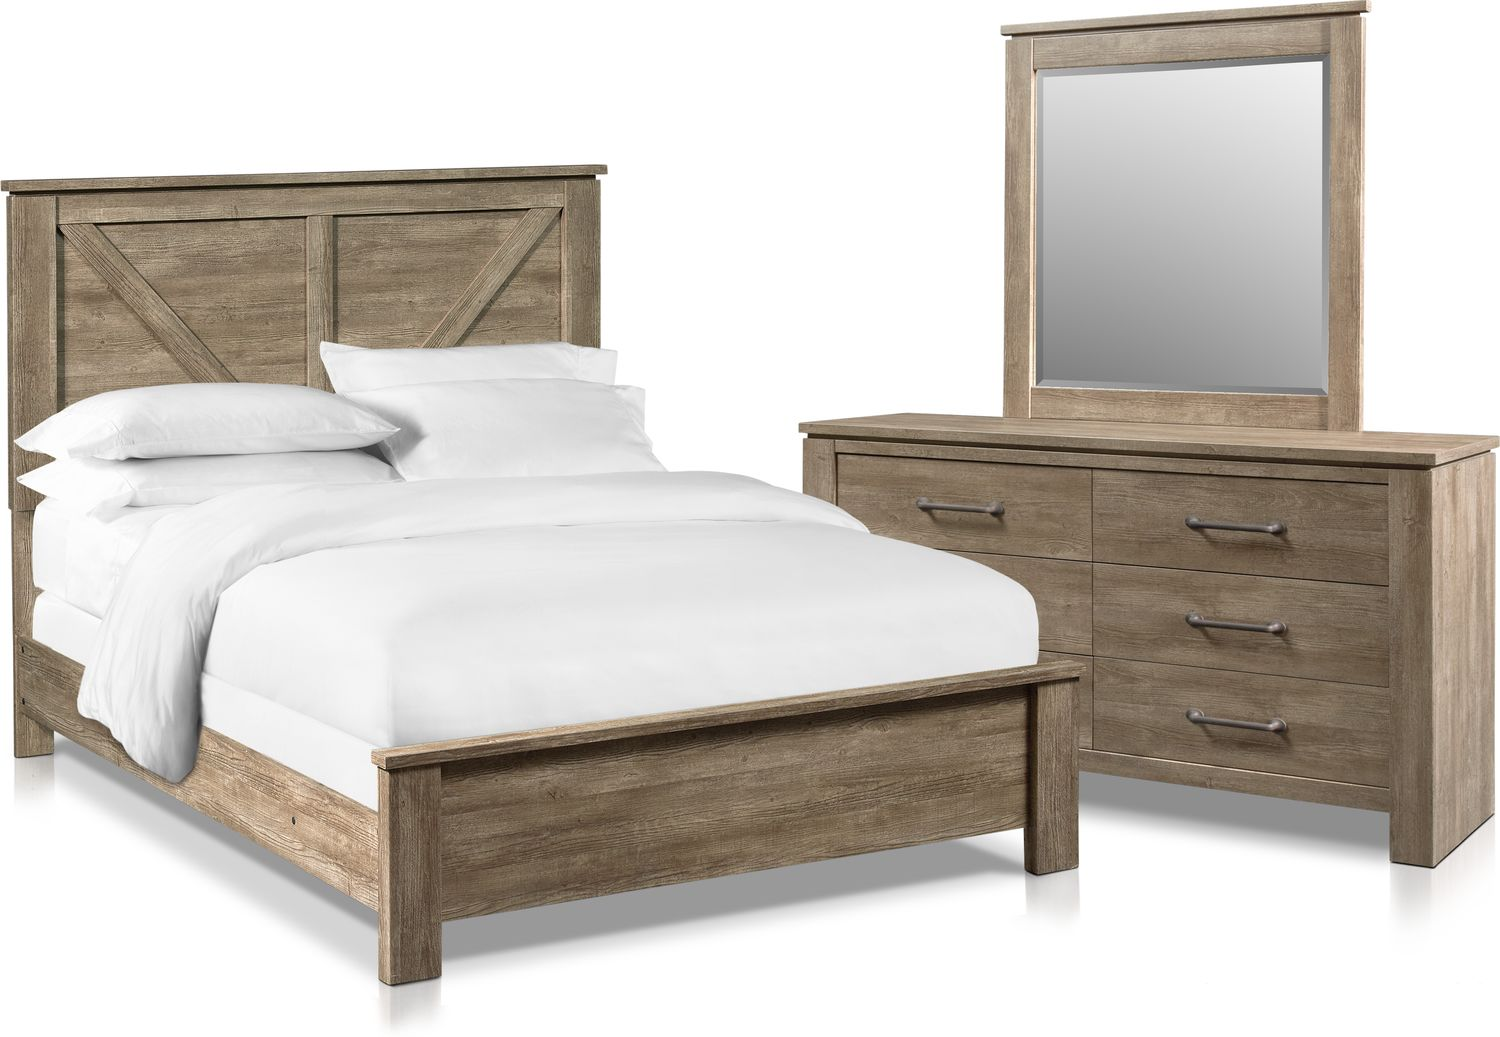 Bedroom Furniture - Perry 5-Piece King Bedroom Set with Dresser and Mirror